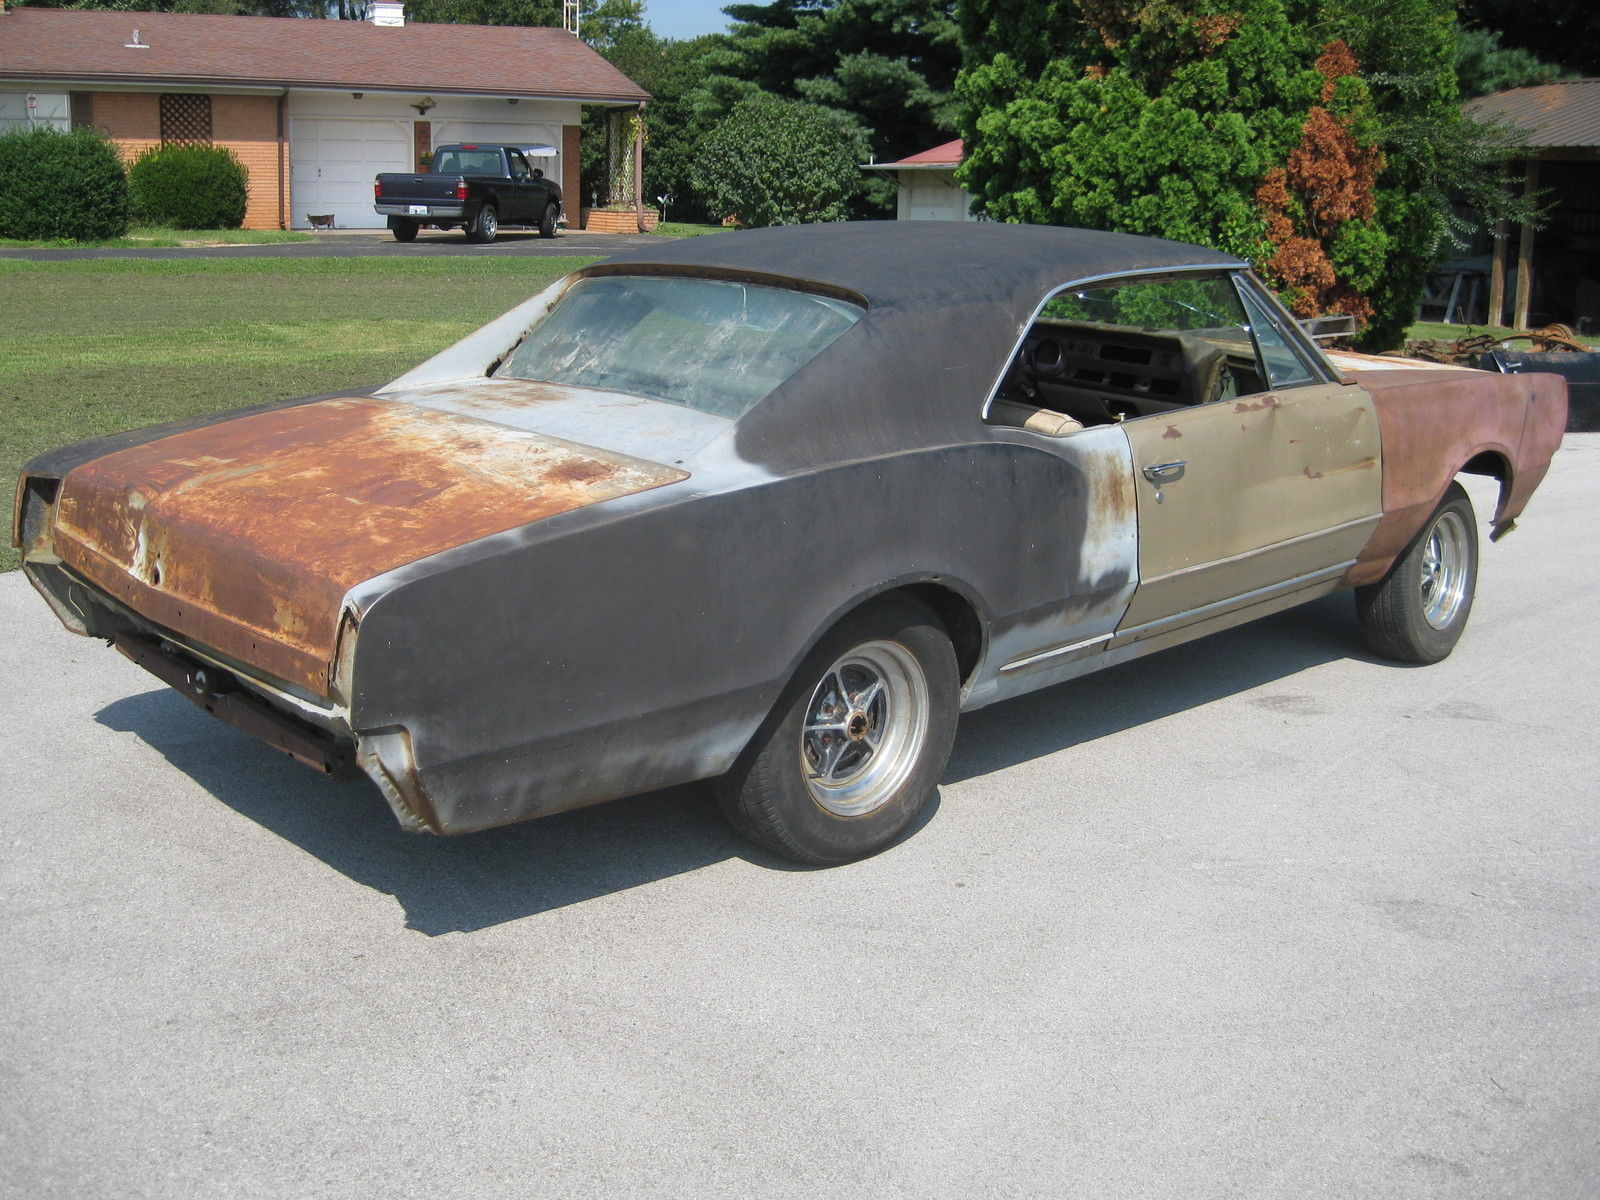 1967 olds cutlass project car. Black Bedroom Furniture Sets. Home Design Ideas